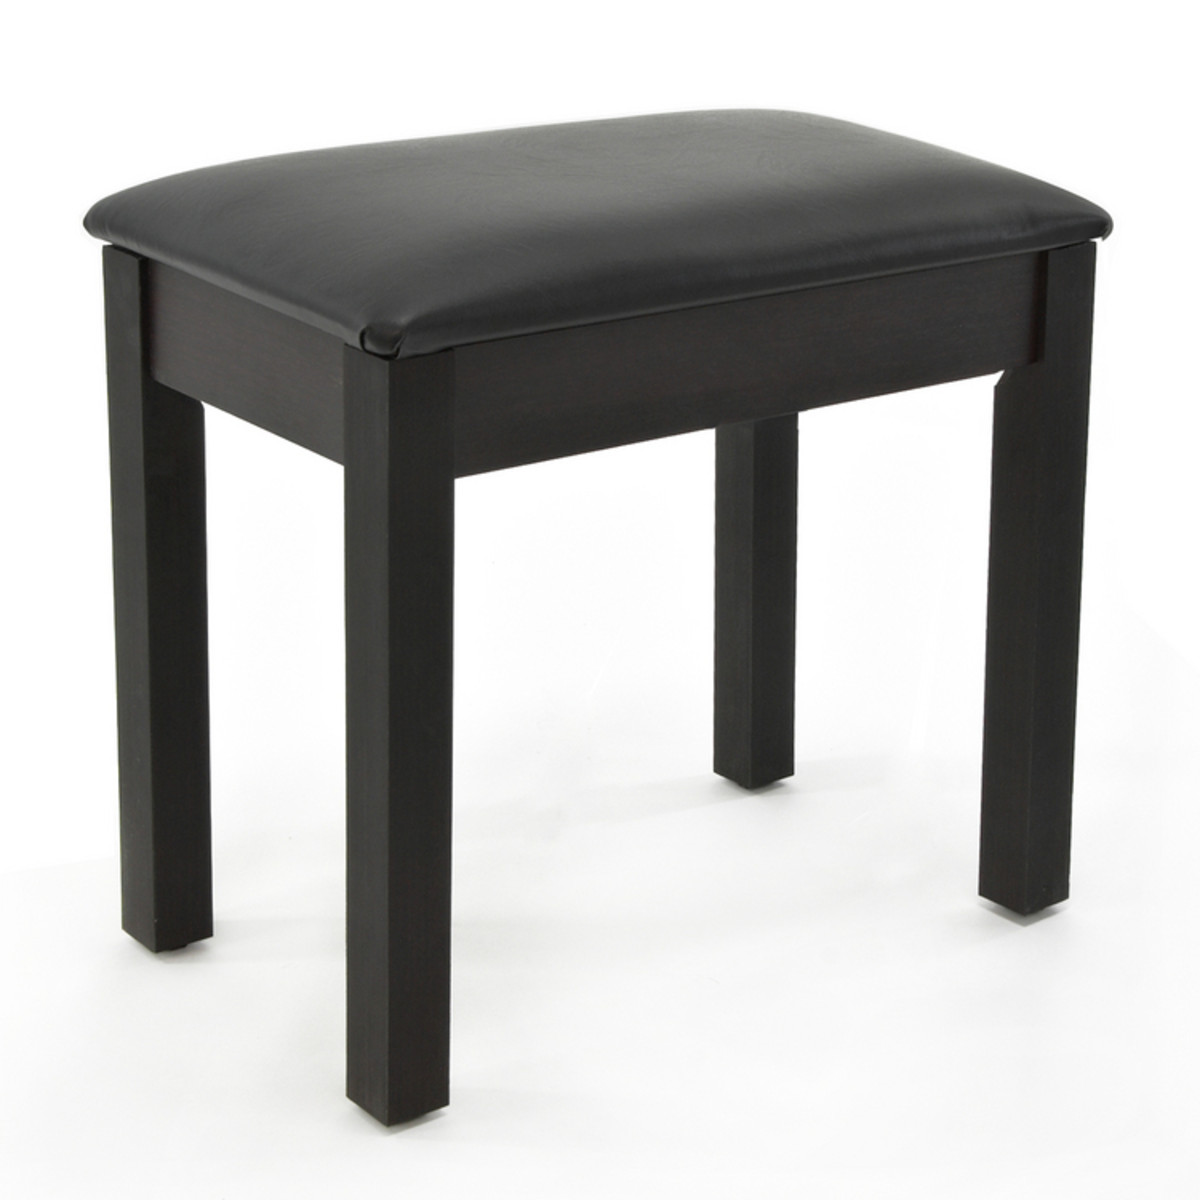 minster mdp1600 piano num rique tabouret palissandre fonc comme neuf. Black Bedroom Furniture Sets. Home Design Ideas